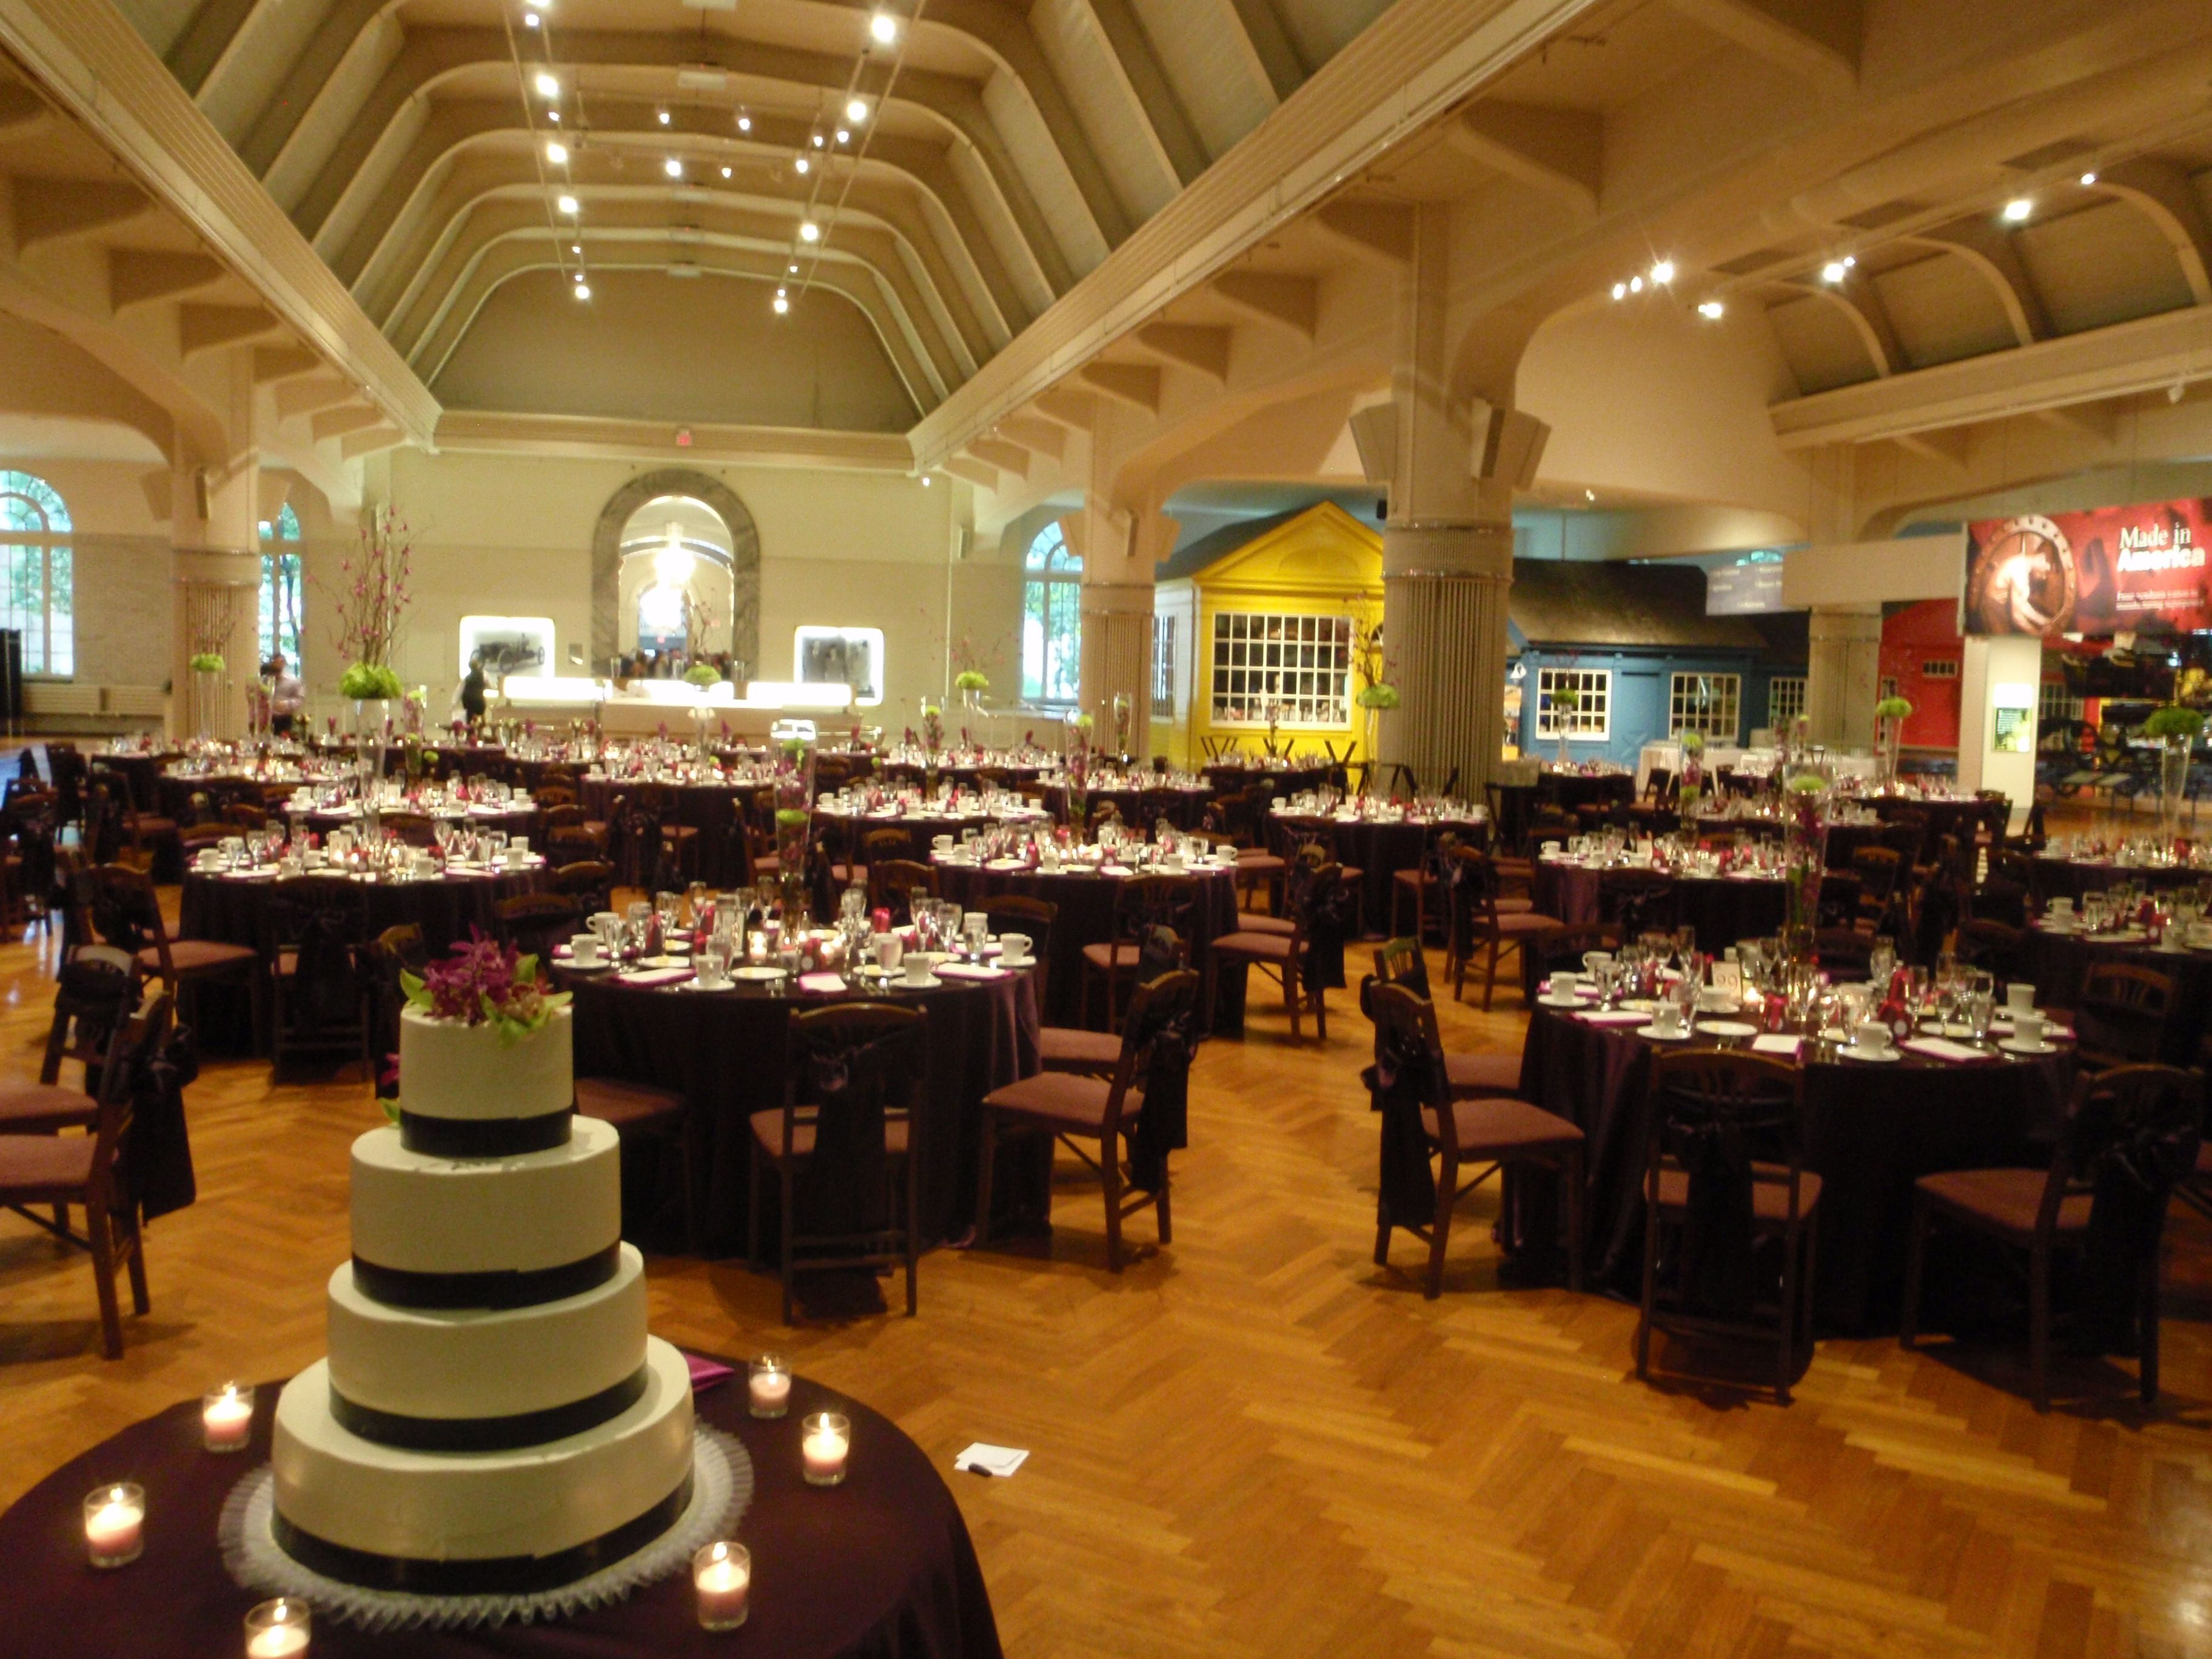 Henry Ford Museum Reception Entrance Michigan Wedding Venues Pinterest And